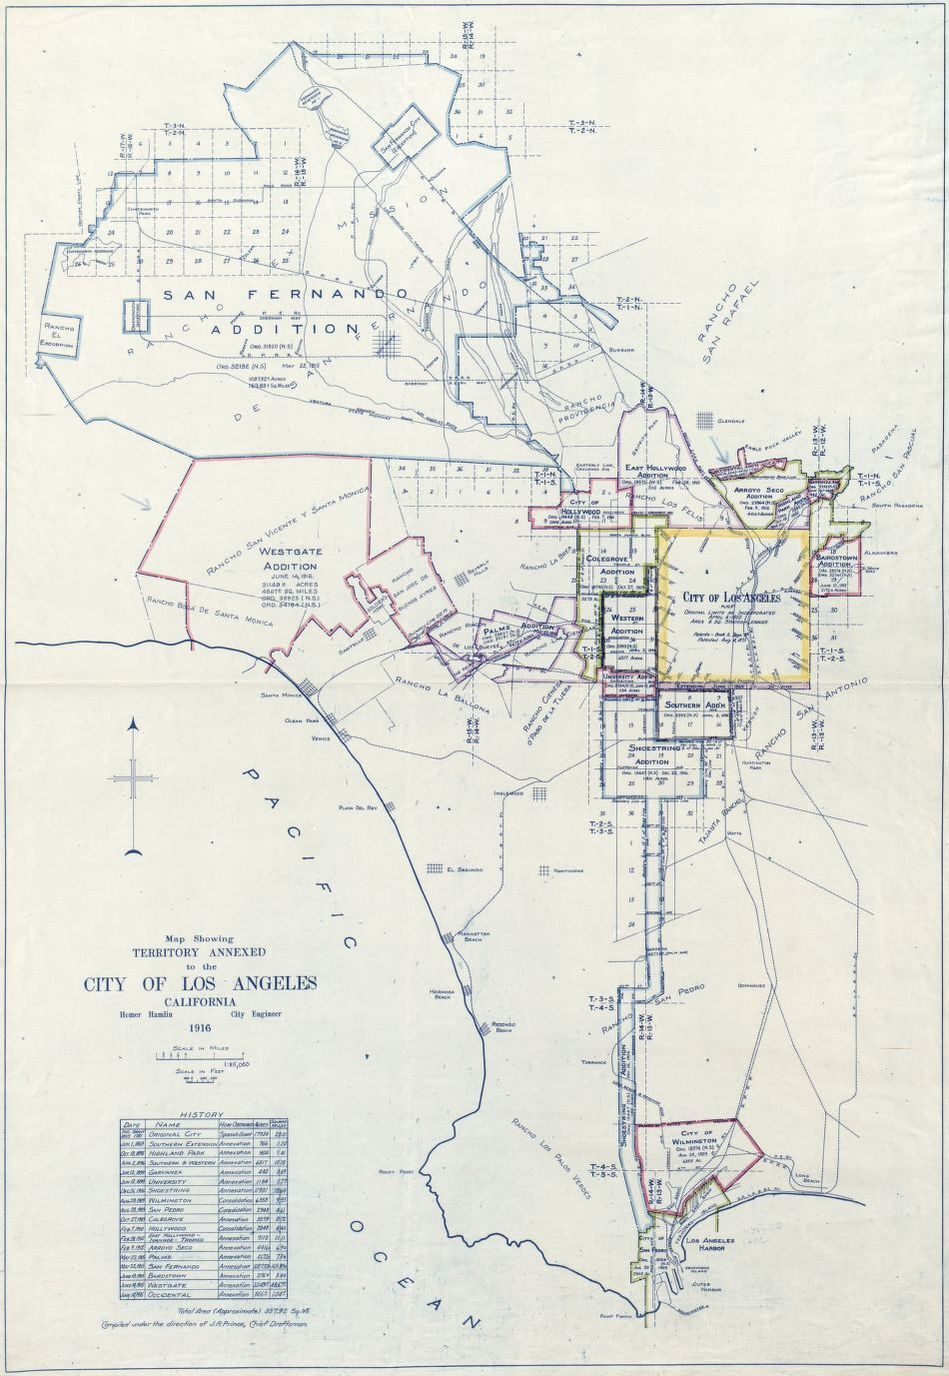 Close up of map showing territory annexed to the City of Los Angeles, California